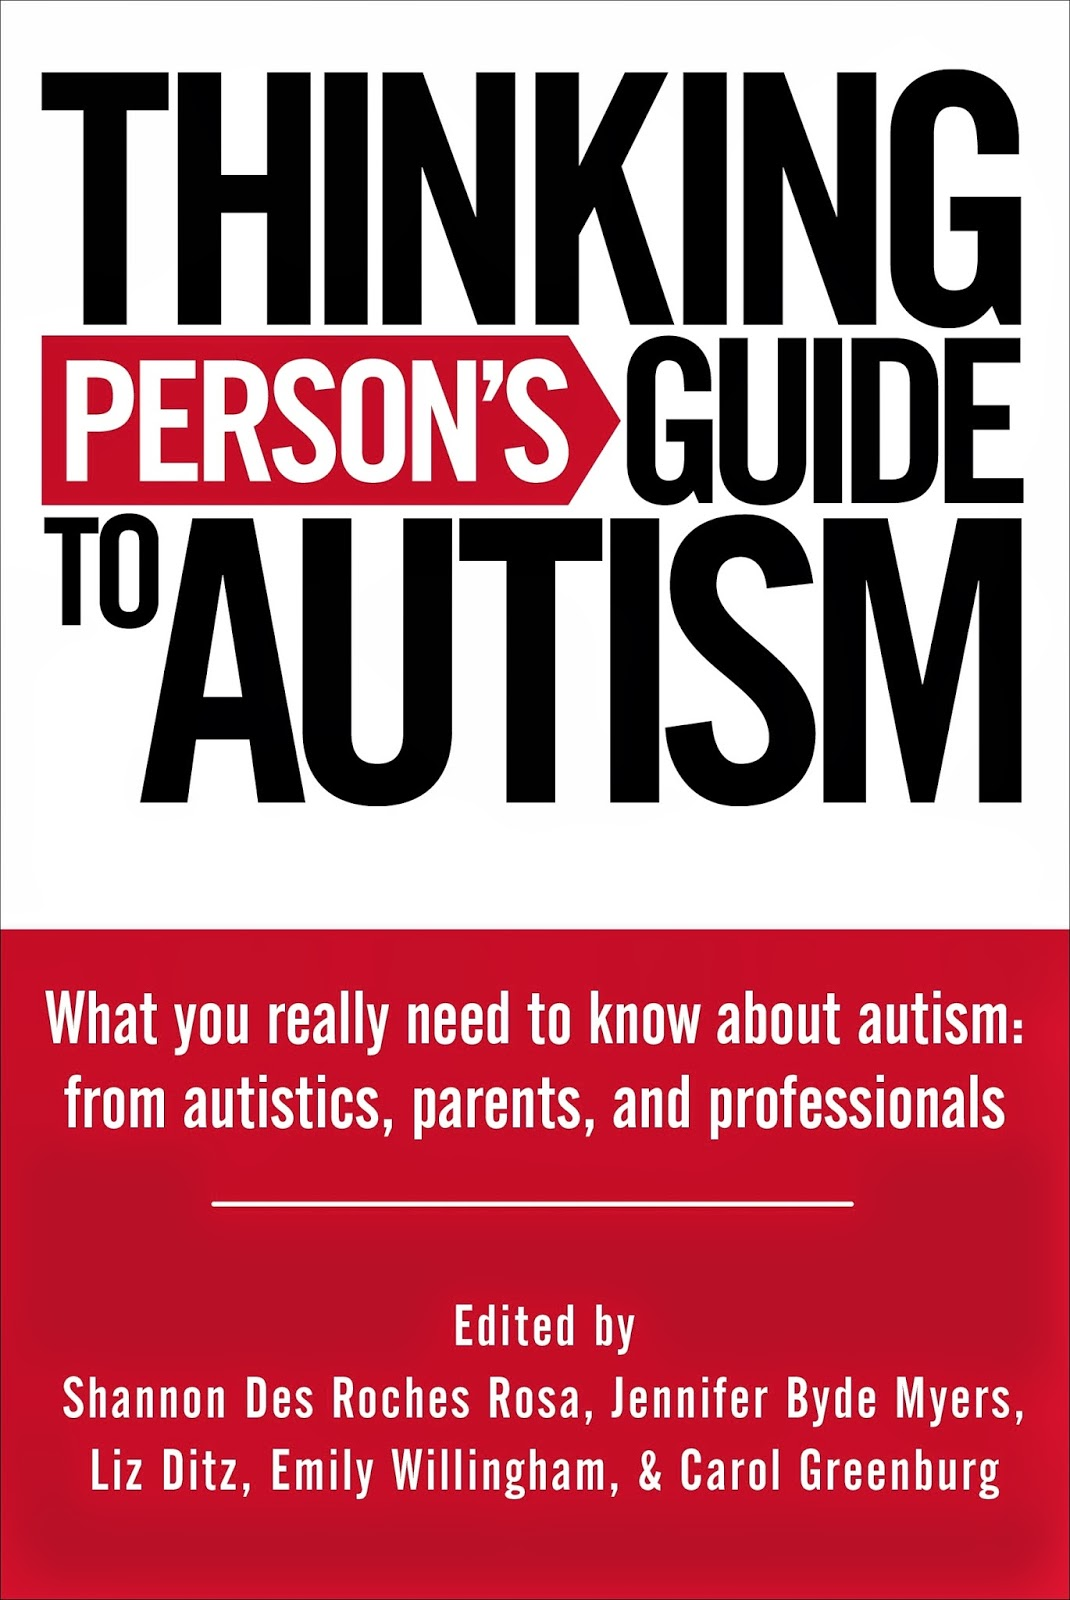 http://www.amazon.com/Thinking-Persons-Autism-Shannon-Roches-ebook/dp/B0071F2HRG/ref=tmm_kin_title_popover?ie=UTF8&qid=1396416021&sr=8-2-fkmr0